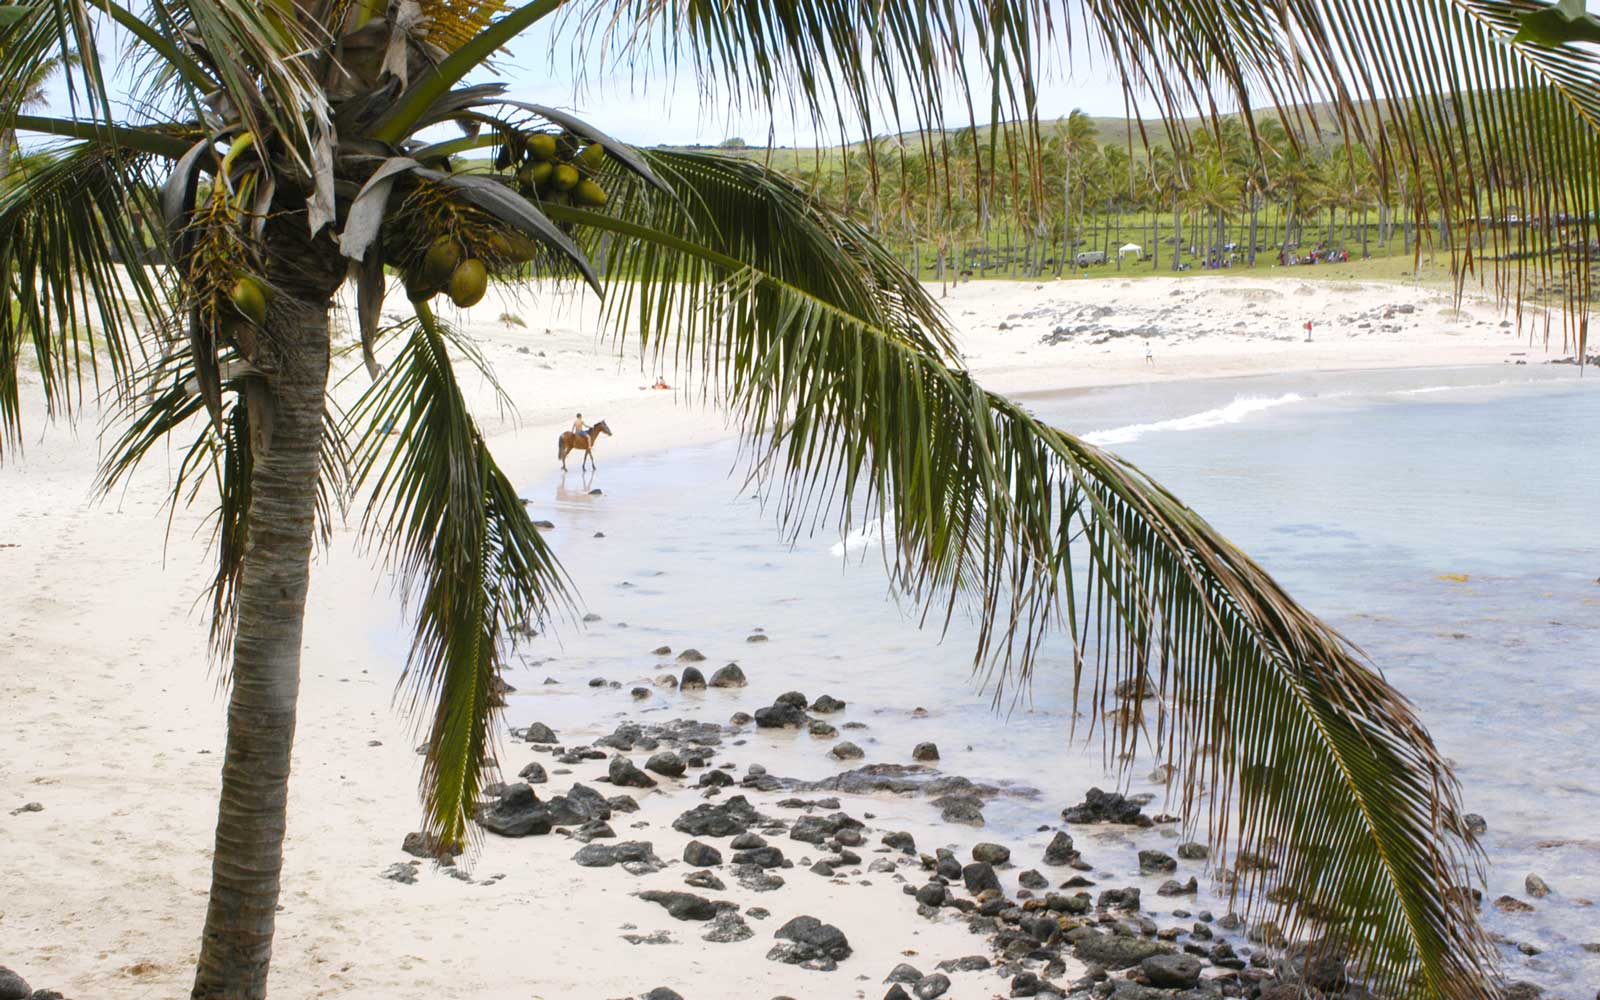 Ovahe a secluded cove with a beautiful beach on Easter Island